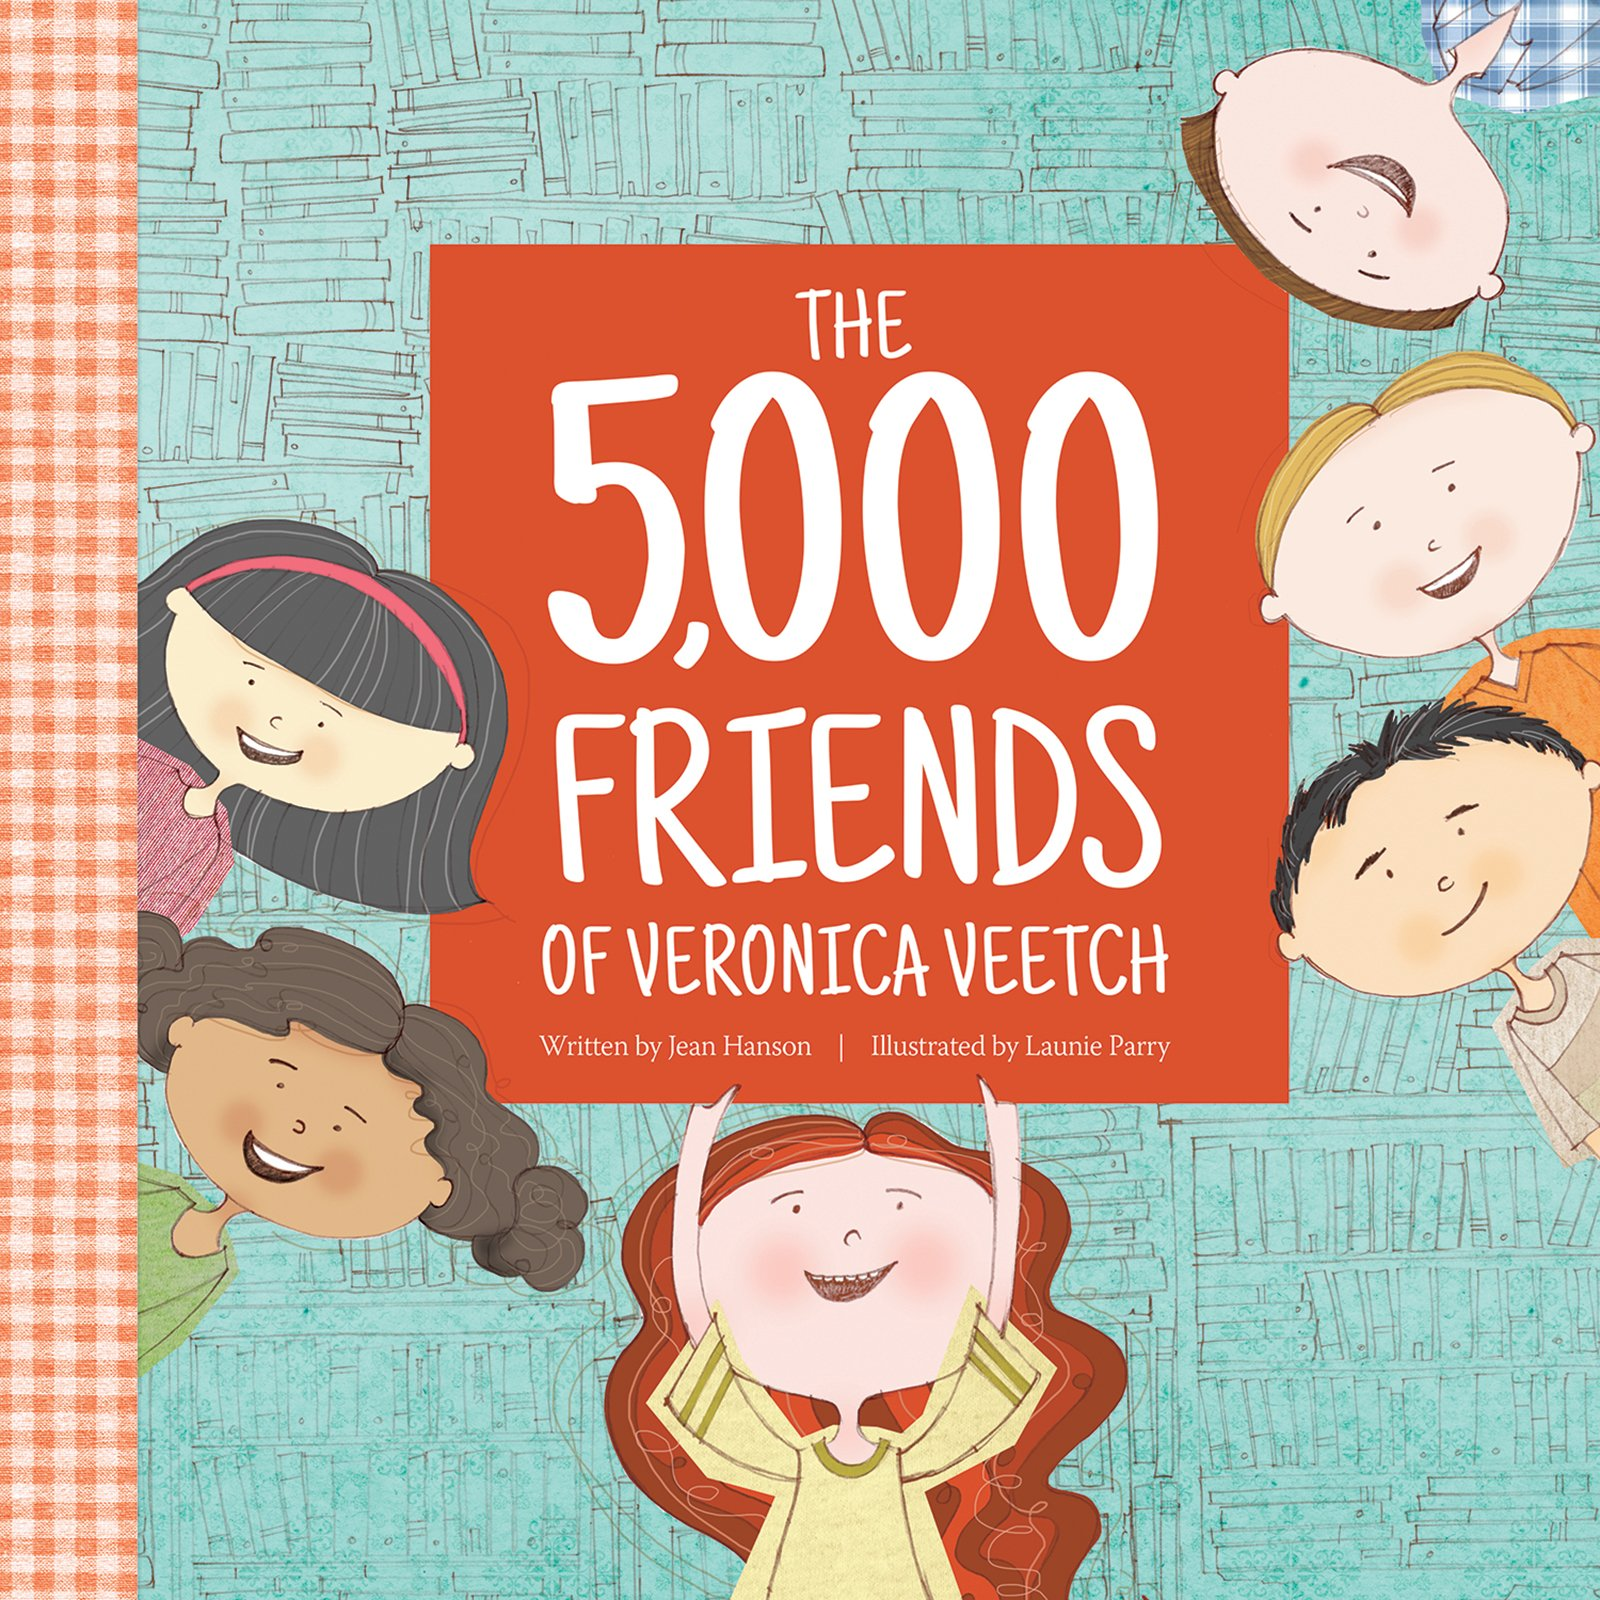 Amazon: The 5,000 Friends Of Veronica Veetch (9781934649275): Jean  Hanson, Launie Parry: Books